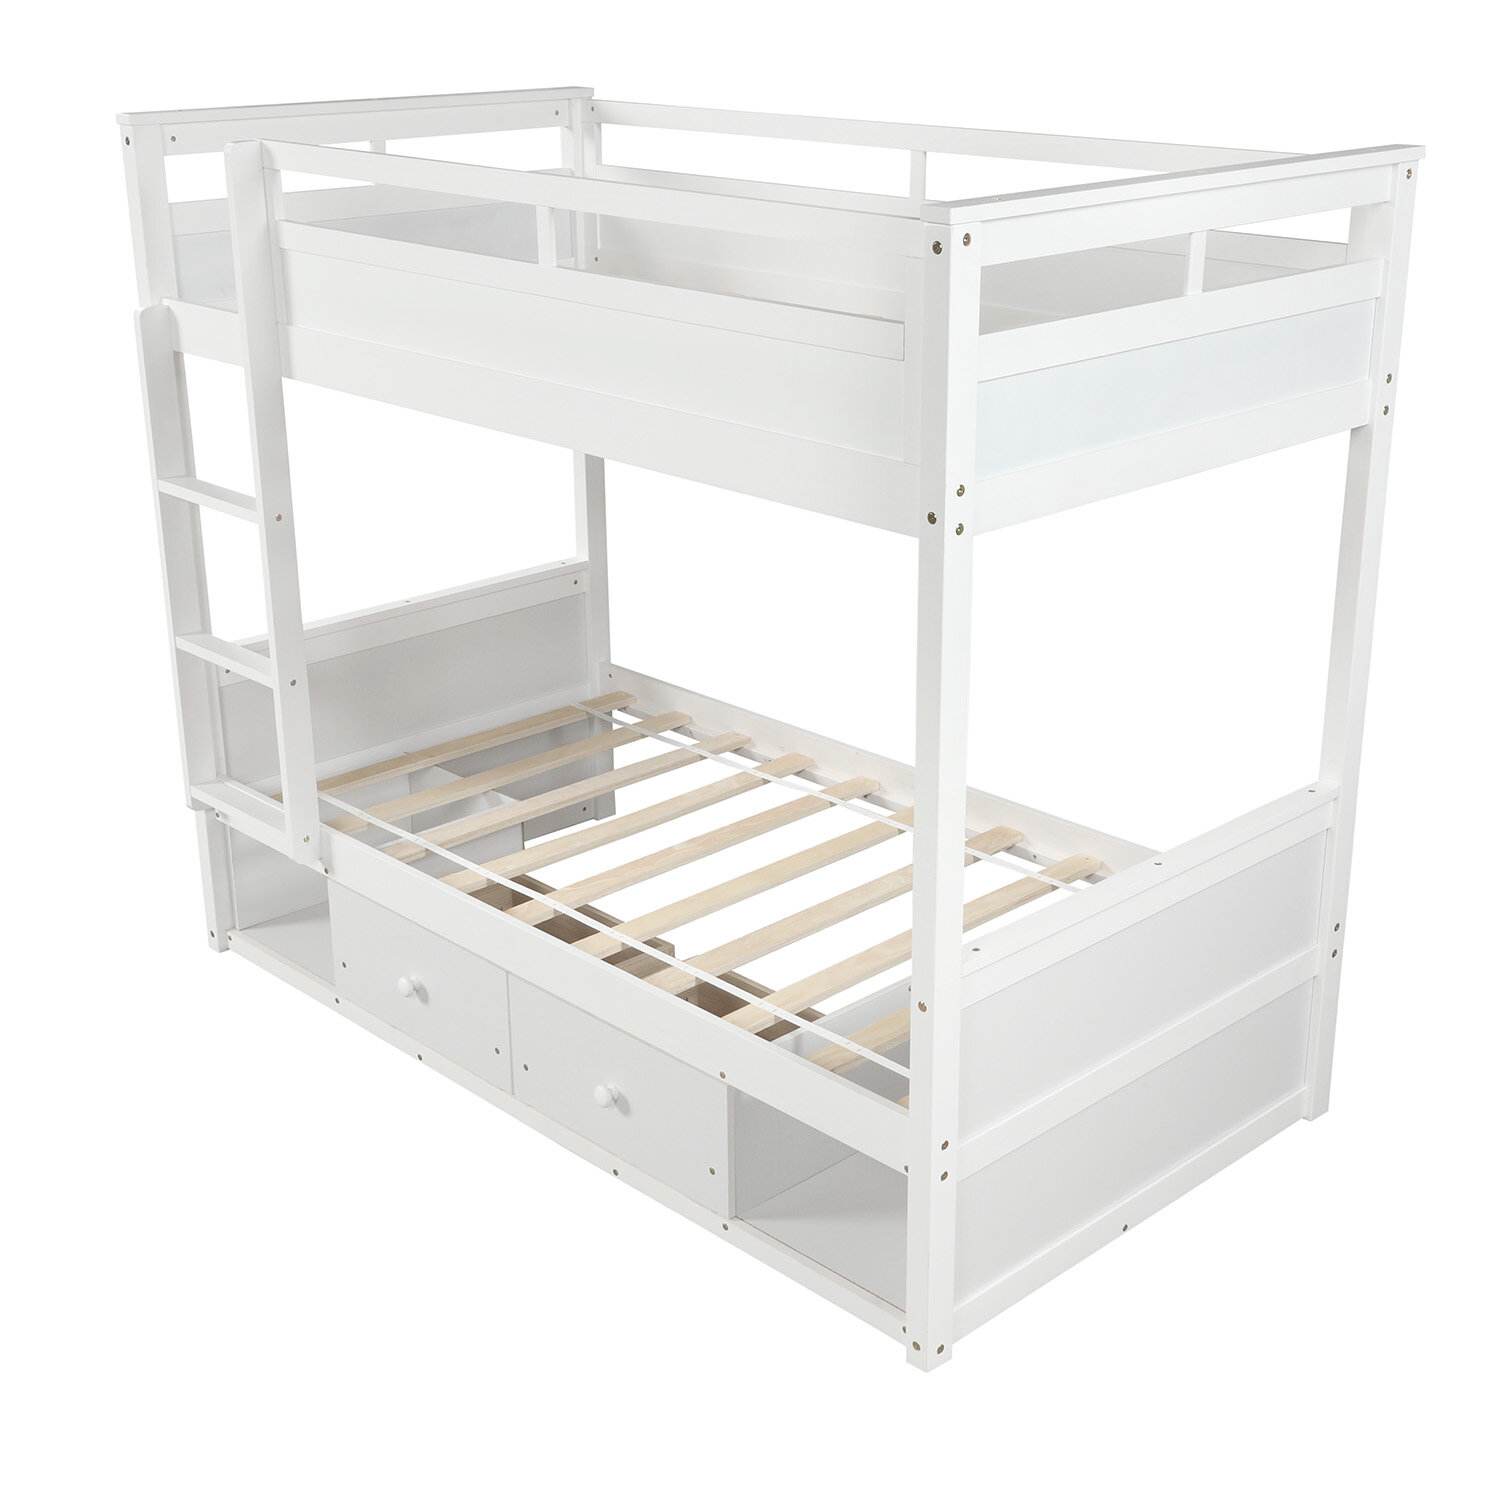 Isabelle Max Carevelle Twin Over Twin Low Loft Bunk Bed With Drawers And Shelves Wayfair